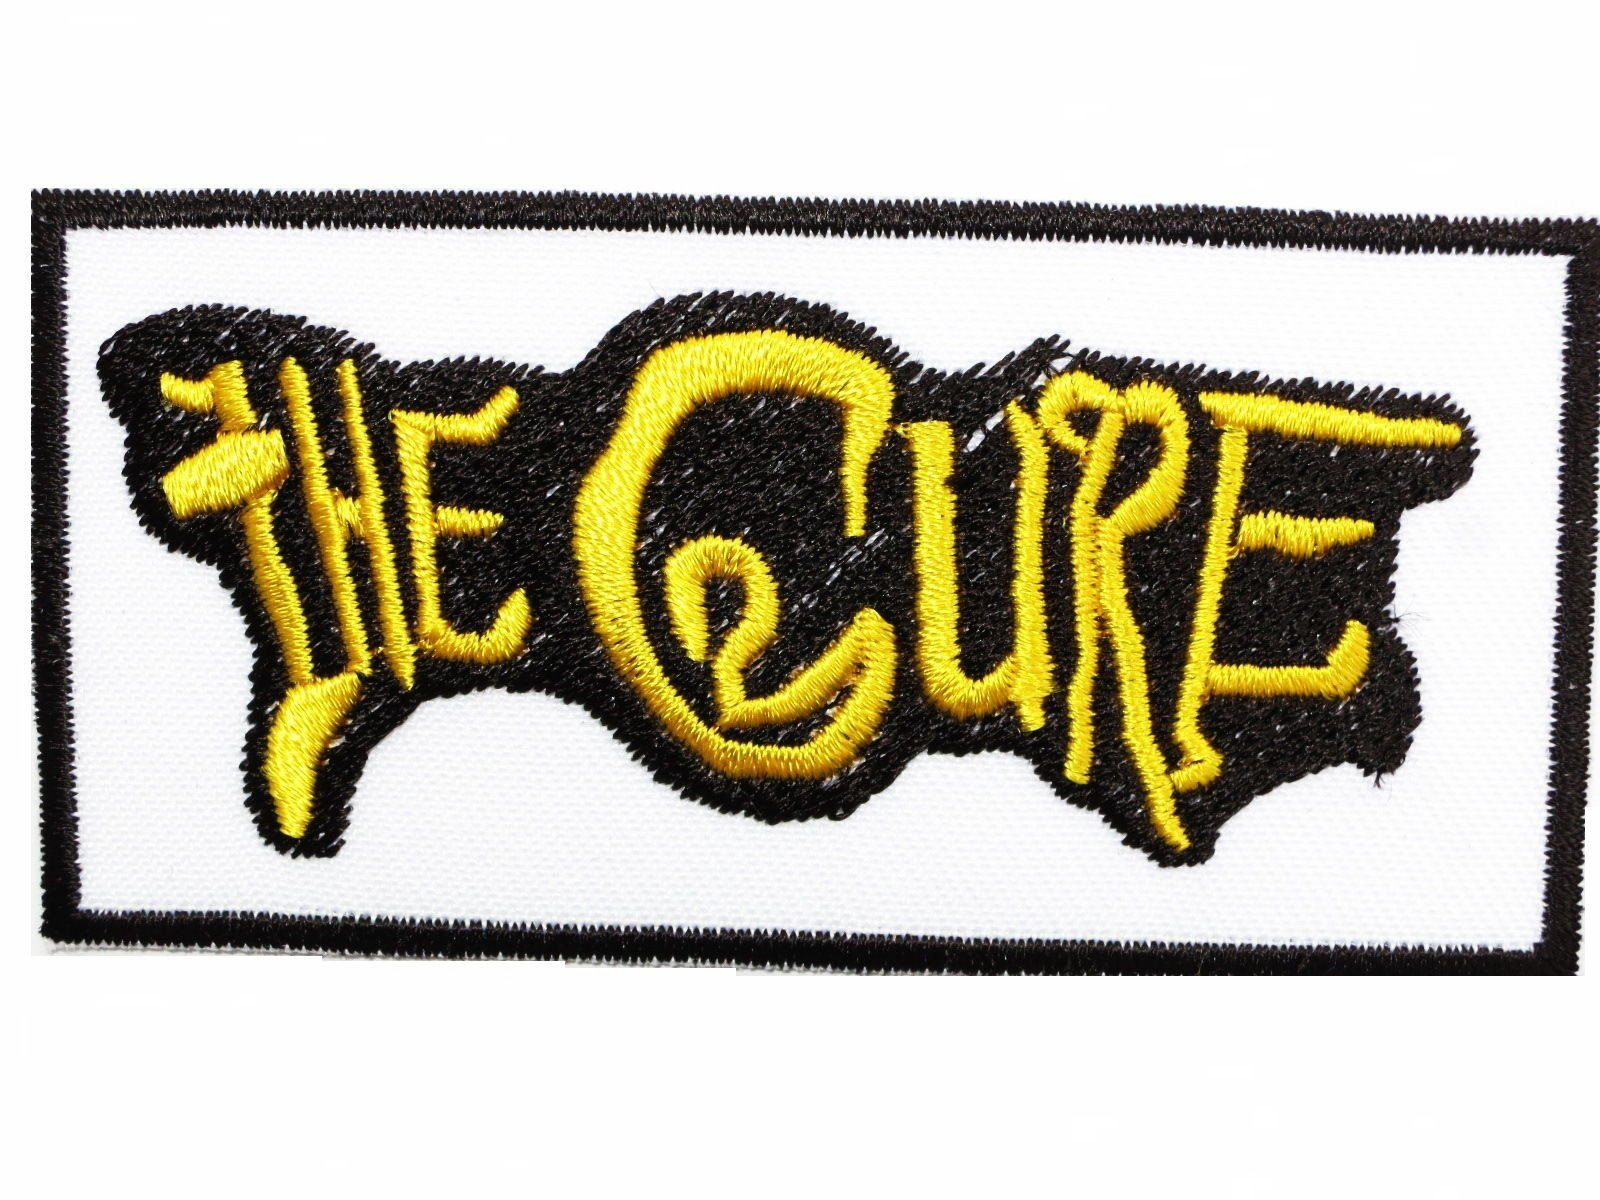 "THE CURE Logo Iron On Sew On Goth Embroidered Patch 3.4""8.7cm - A Patch E Store"